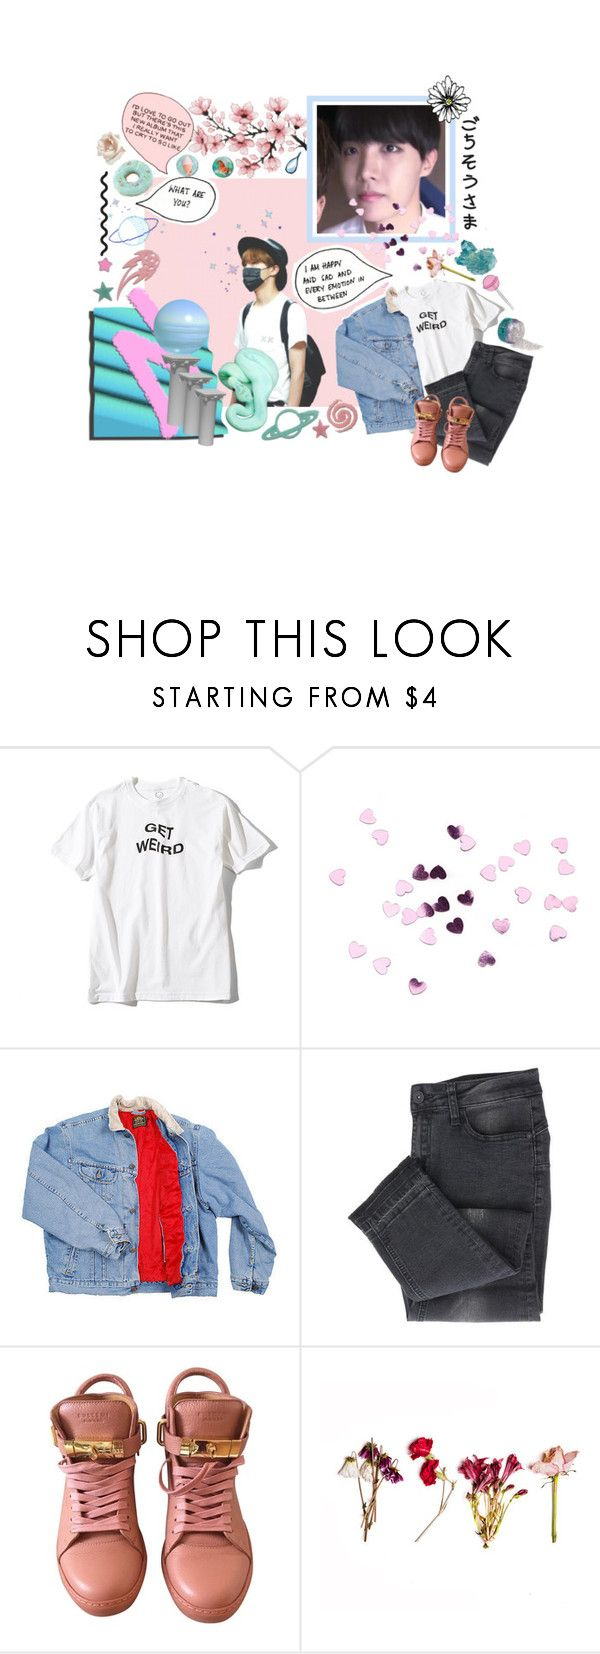 """GOT MY NUMBER, YOU KNOW WHAT TO DO"" by johnuhope ❤ liked on Polyvore featuring Hai, Lee, BUSCEMI, kpop, bts, bangtan, Jhope and hoseok"